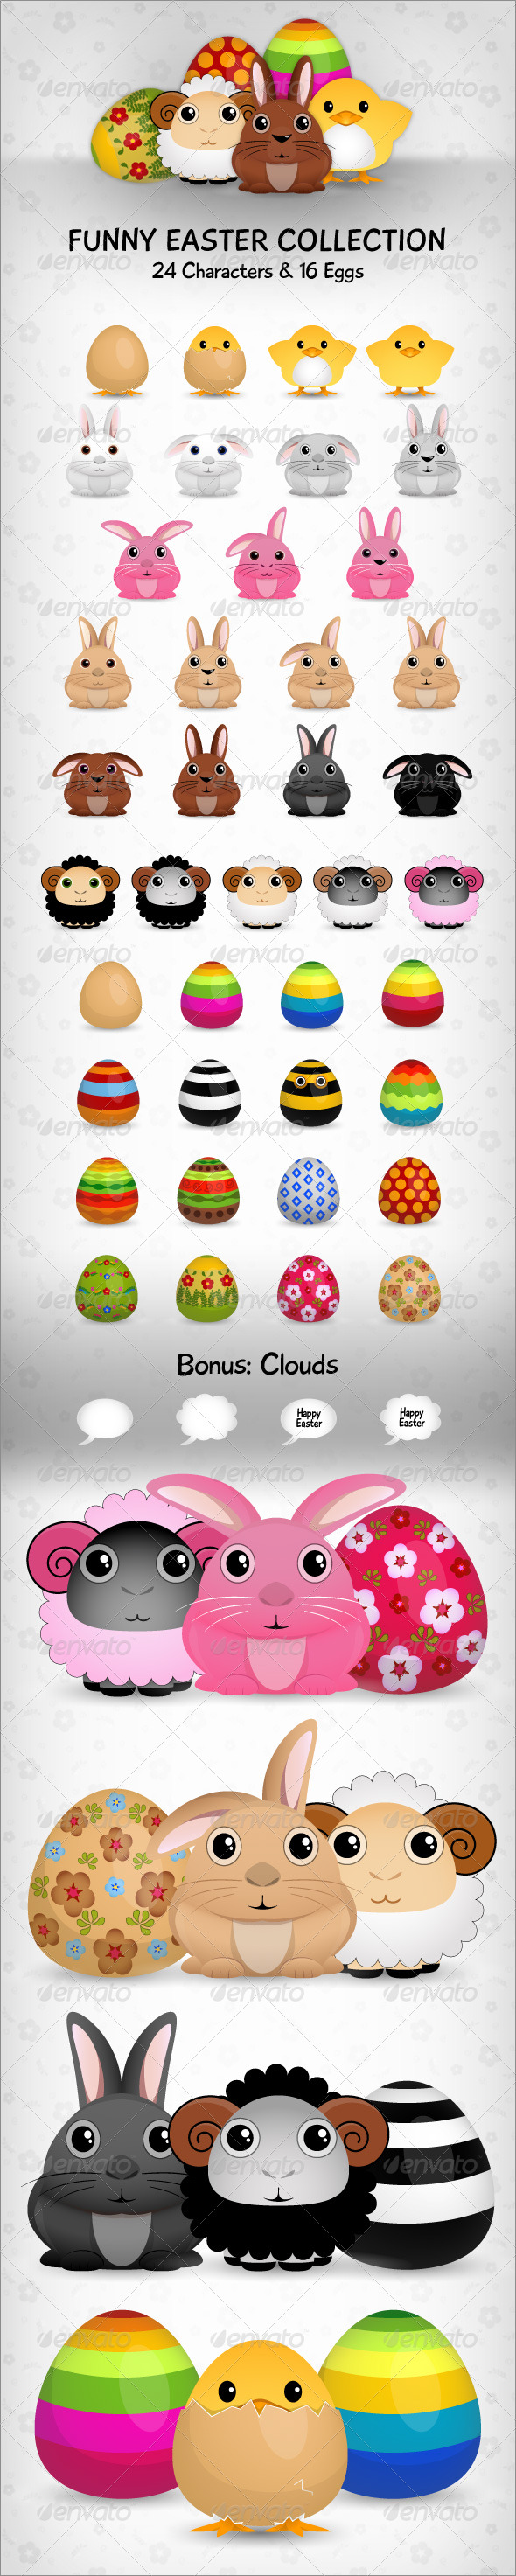 easter-graphics6